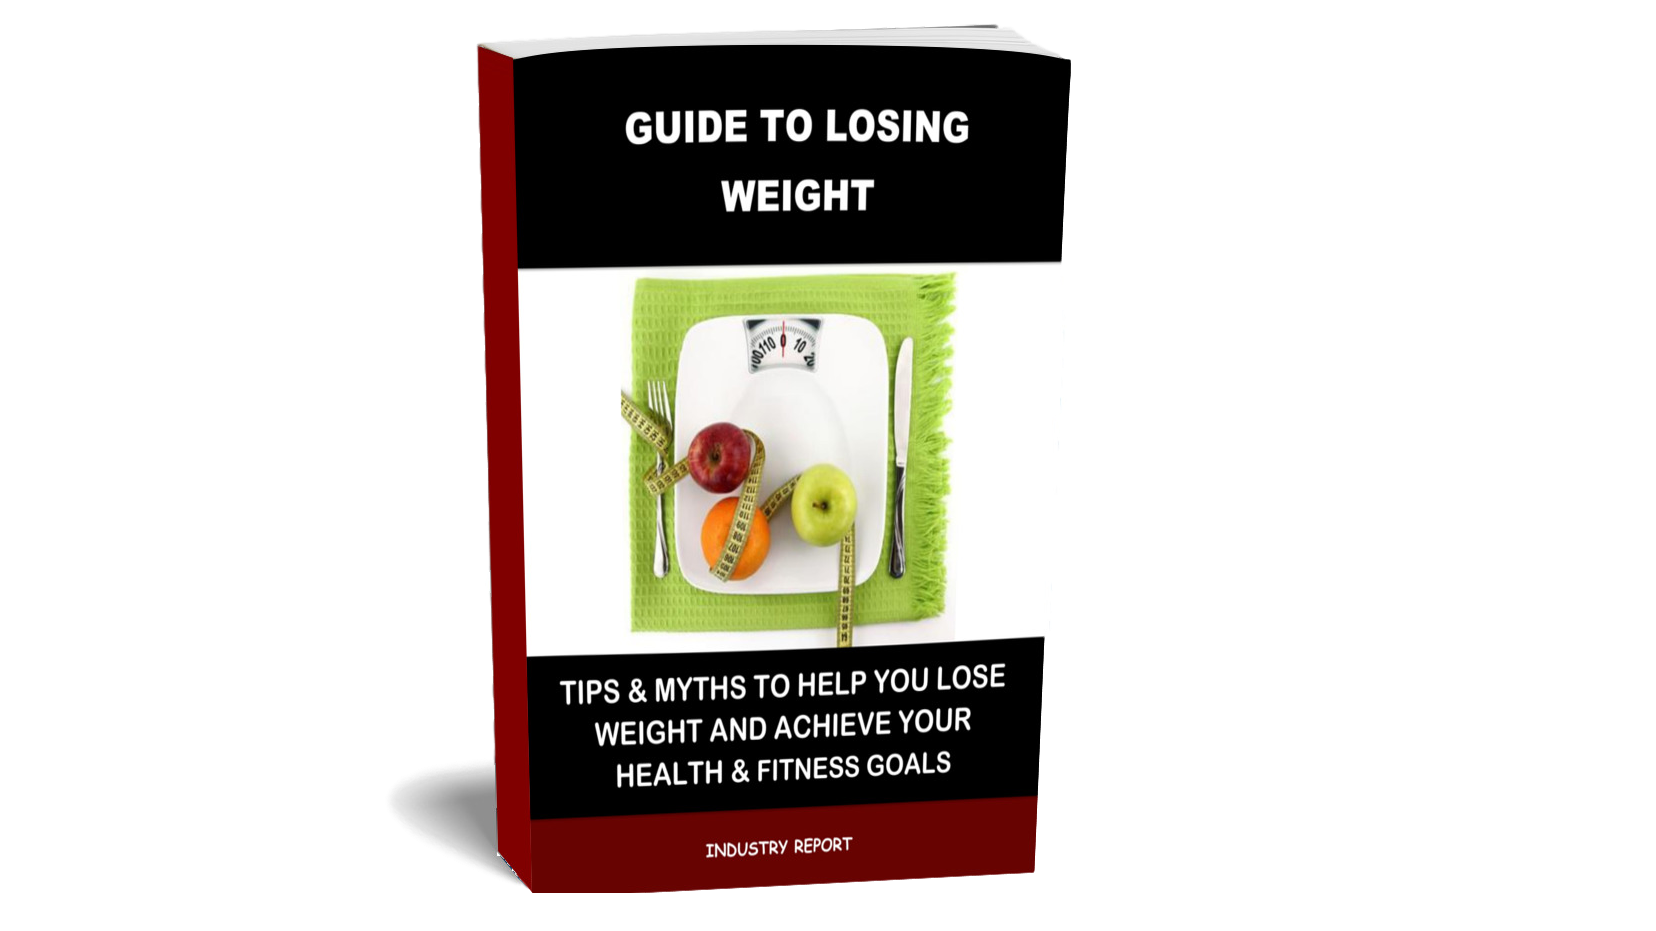 Free Weight Loss Guide With Tips To Lose Weight